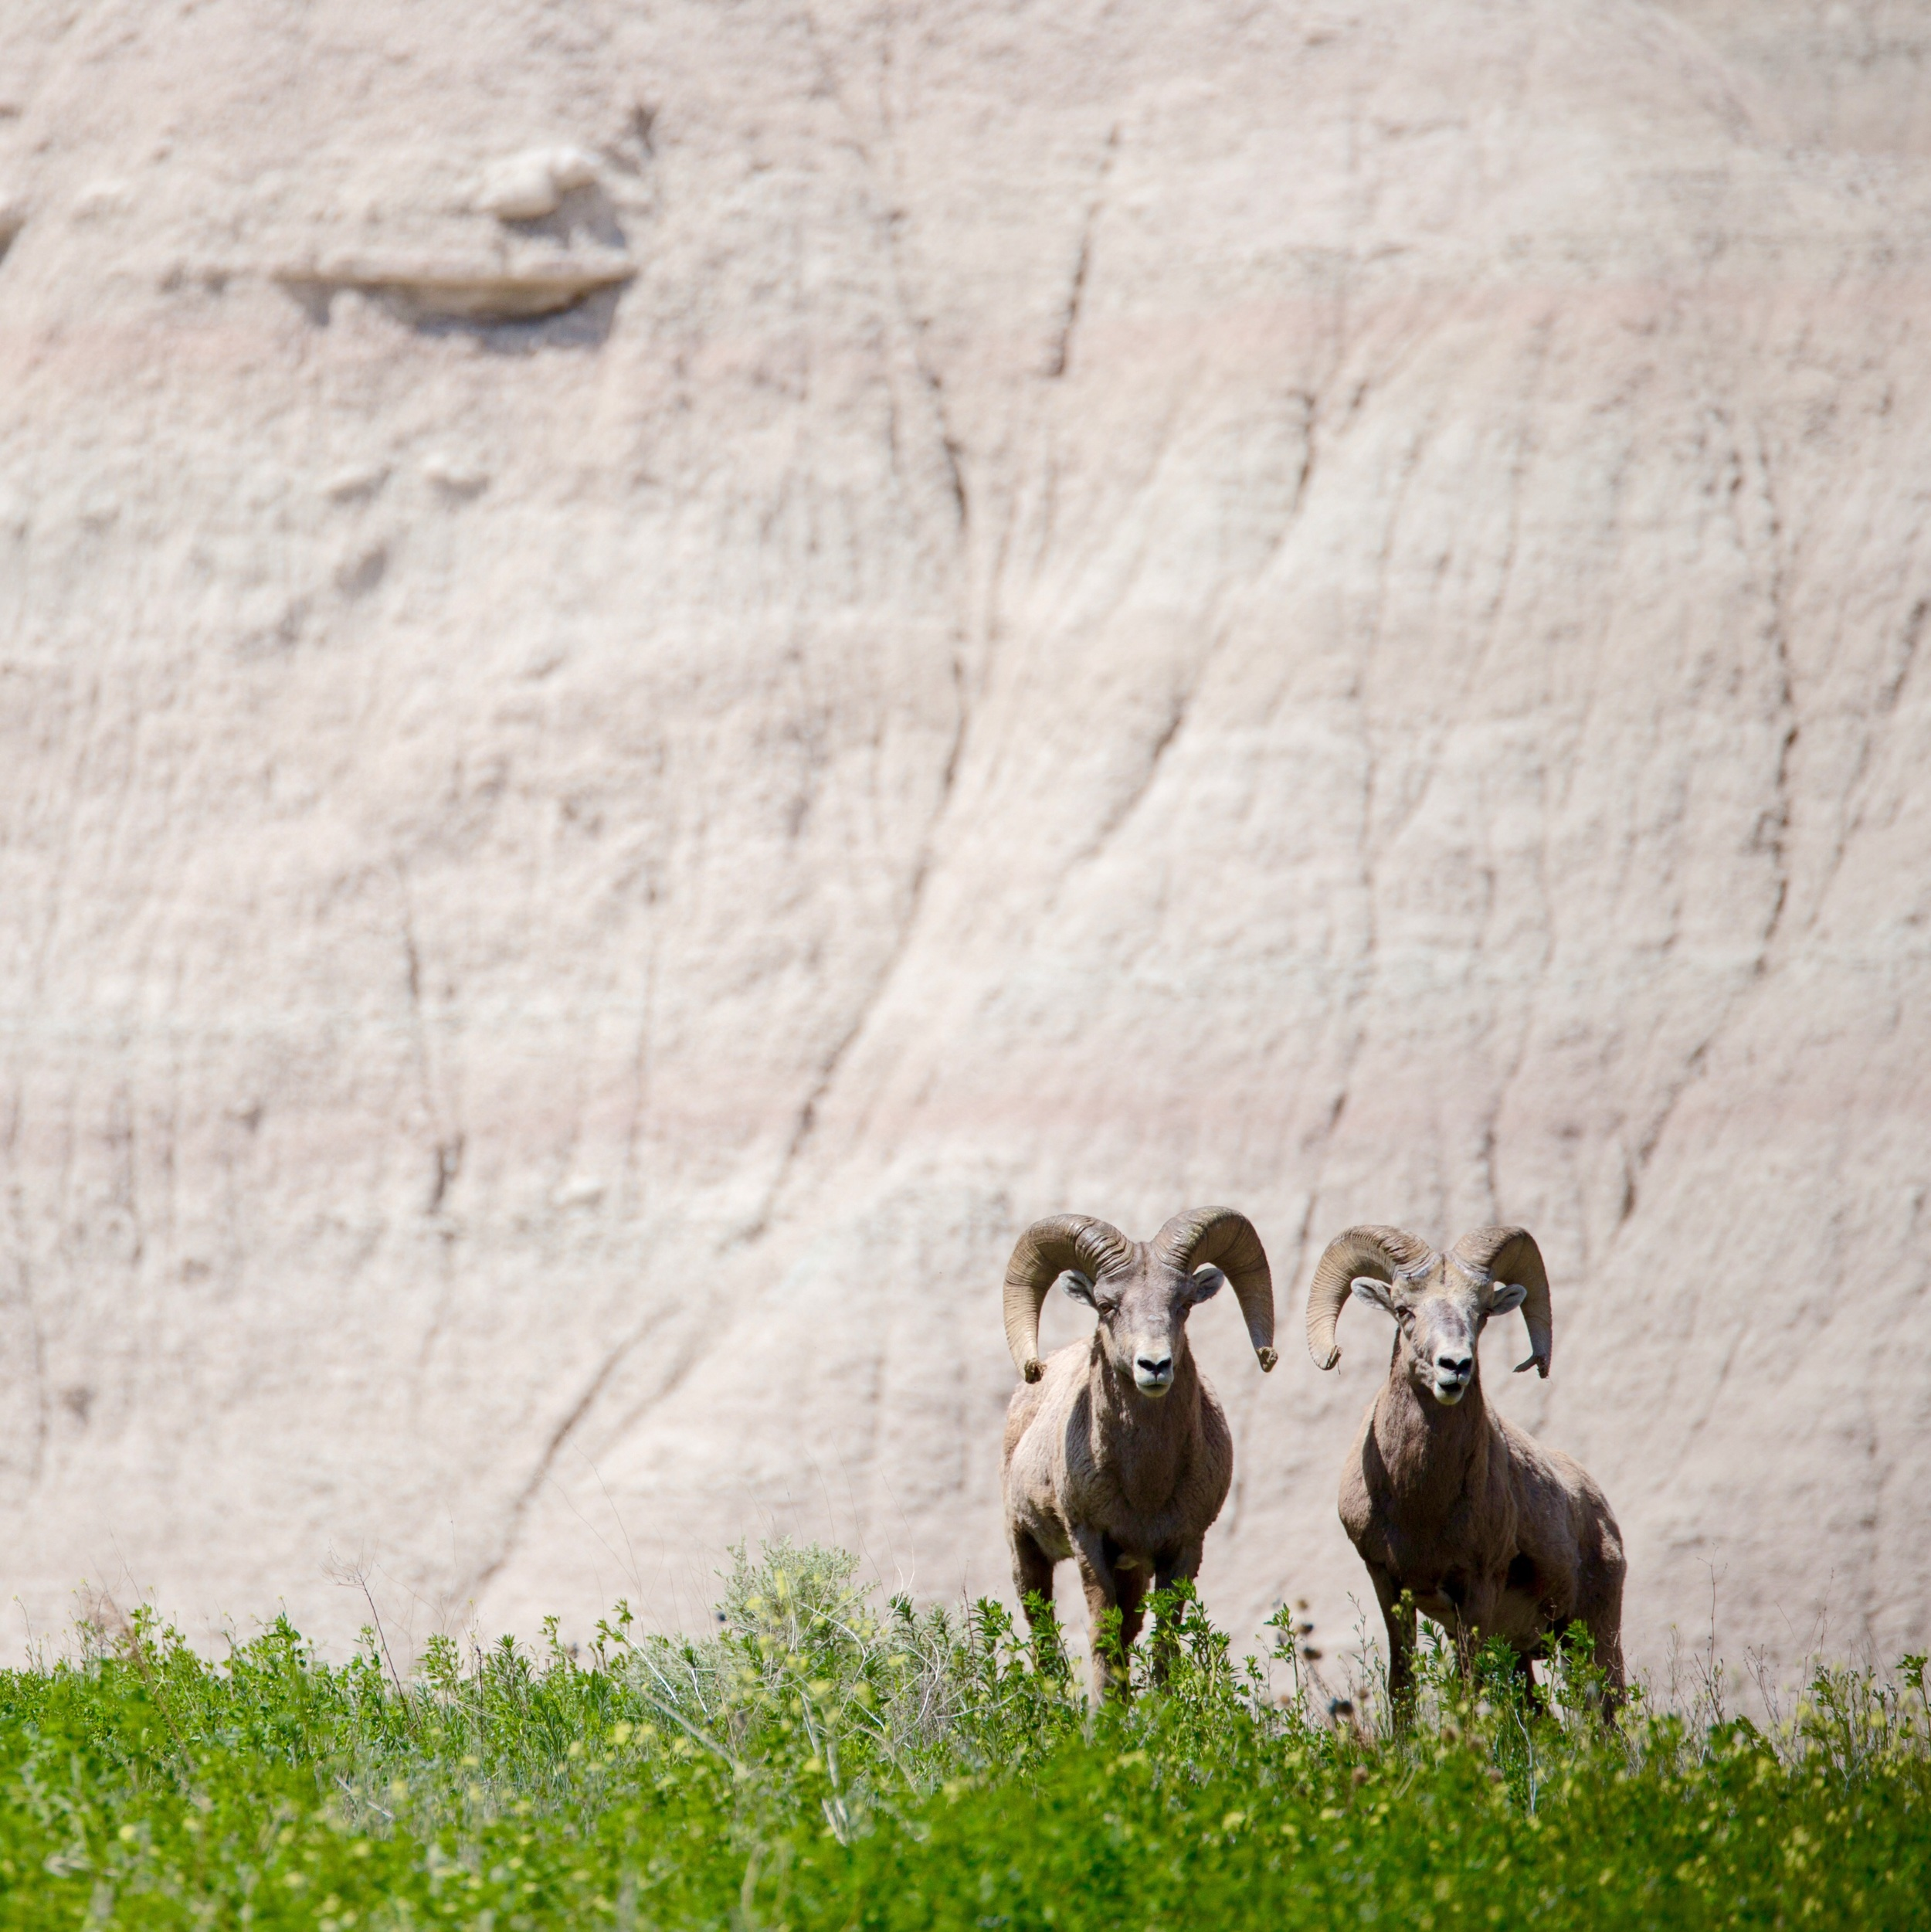 New friends in the Badlands